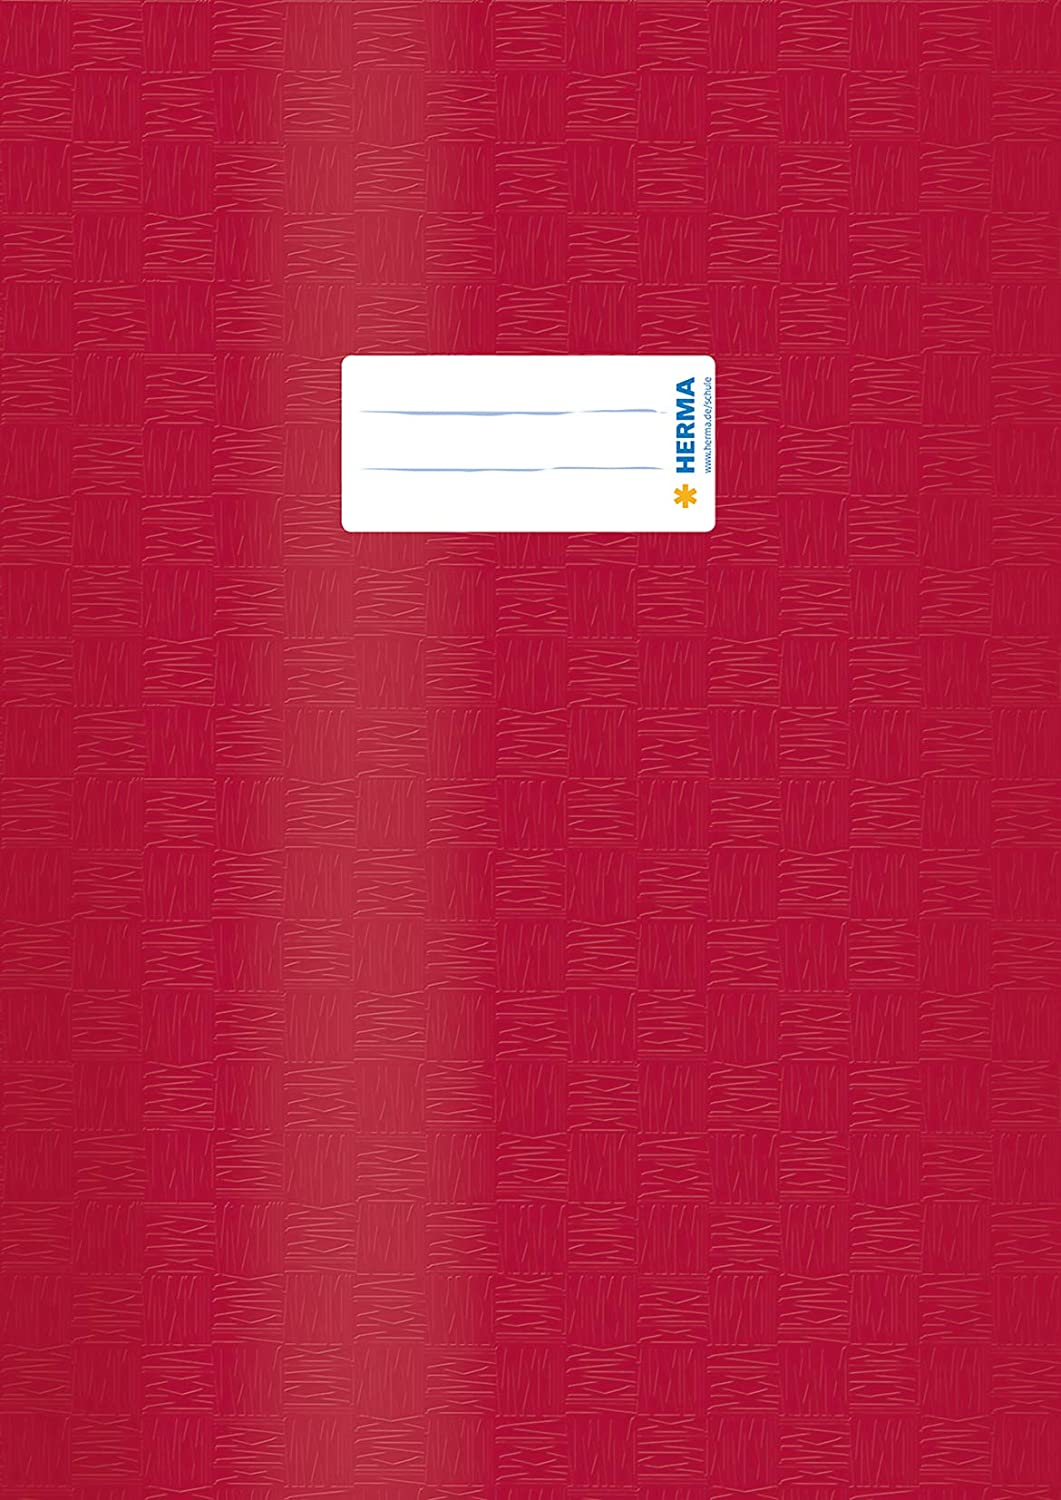 with inscription label pack of 10 HERMA Exercise Book Cover A4 made of wipeable and sturdy plastic slip on cover jackets for school assorted colours 19997